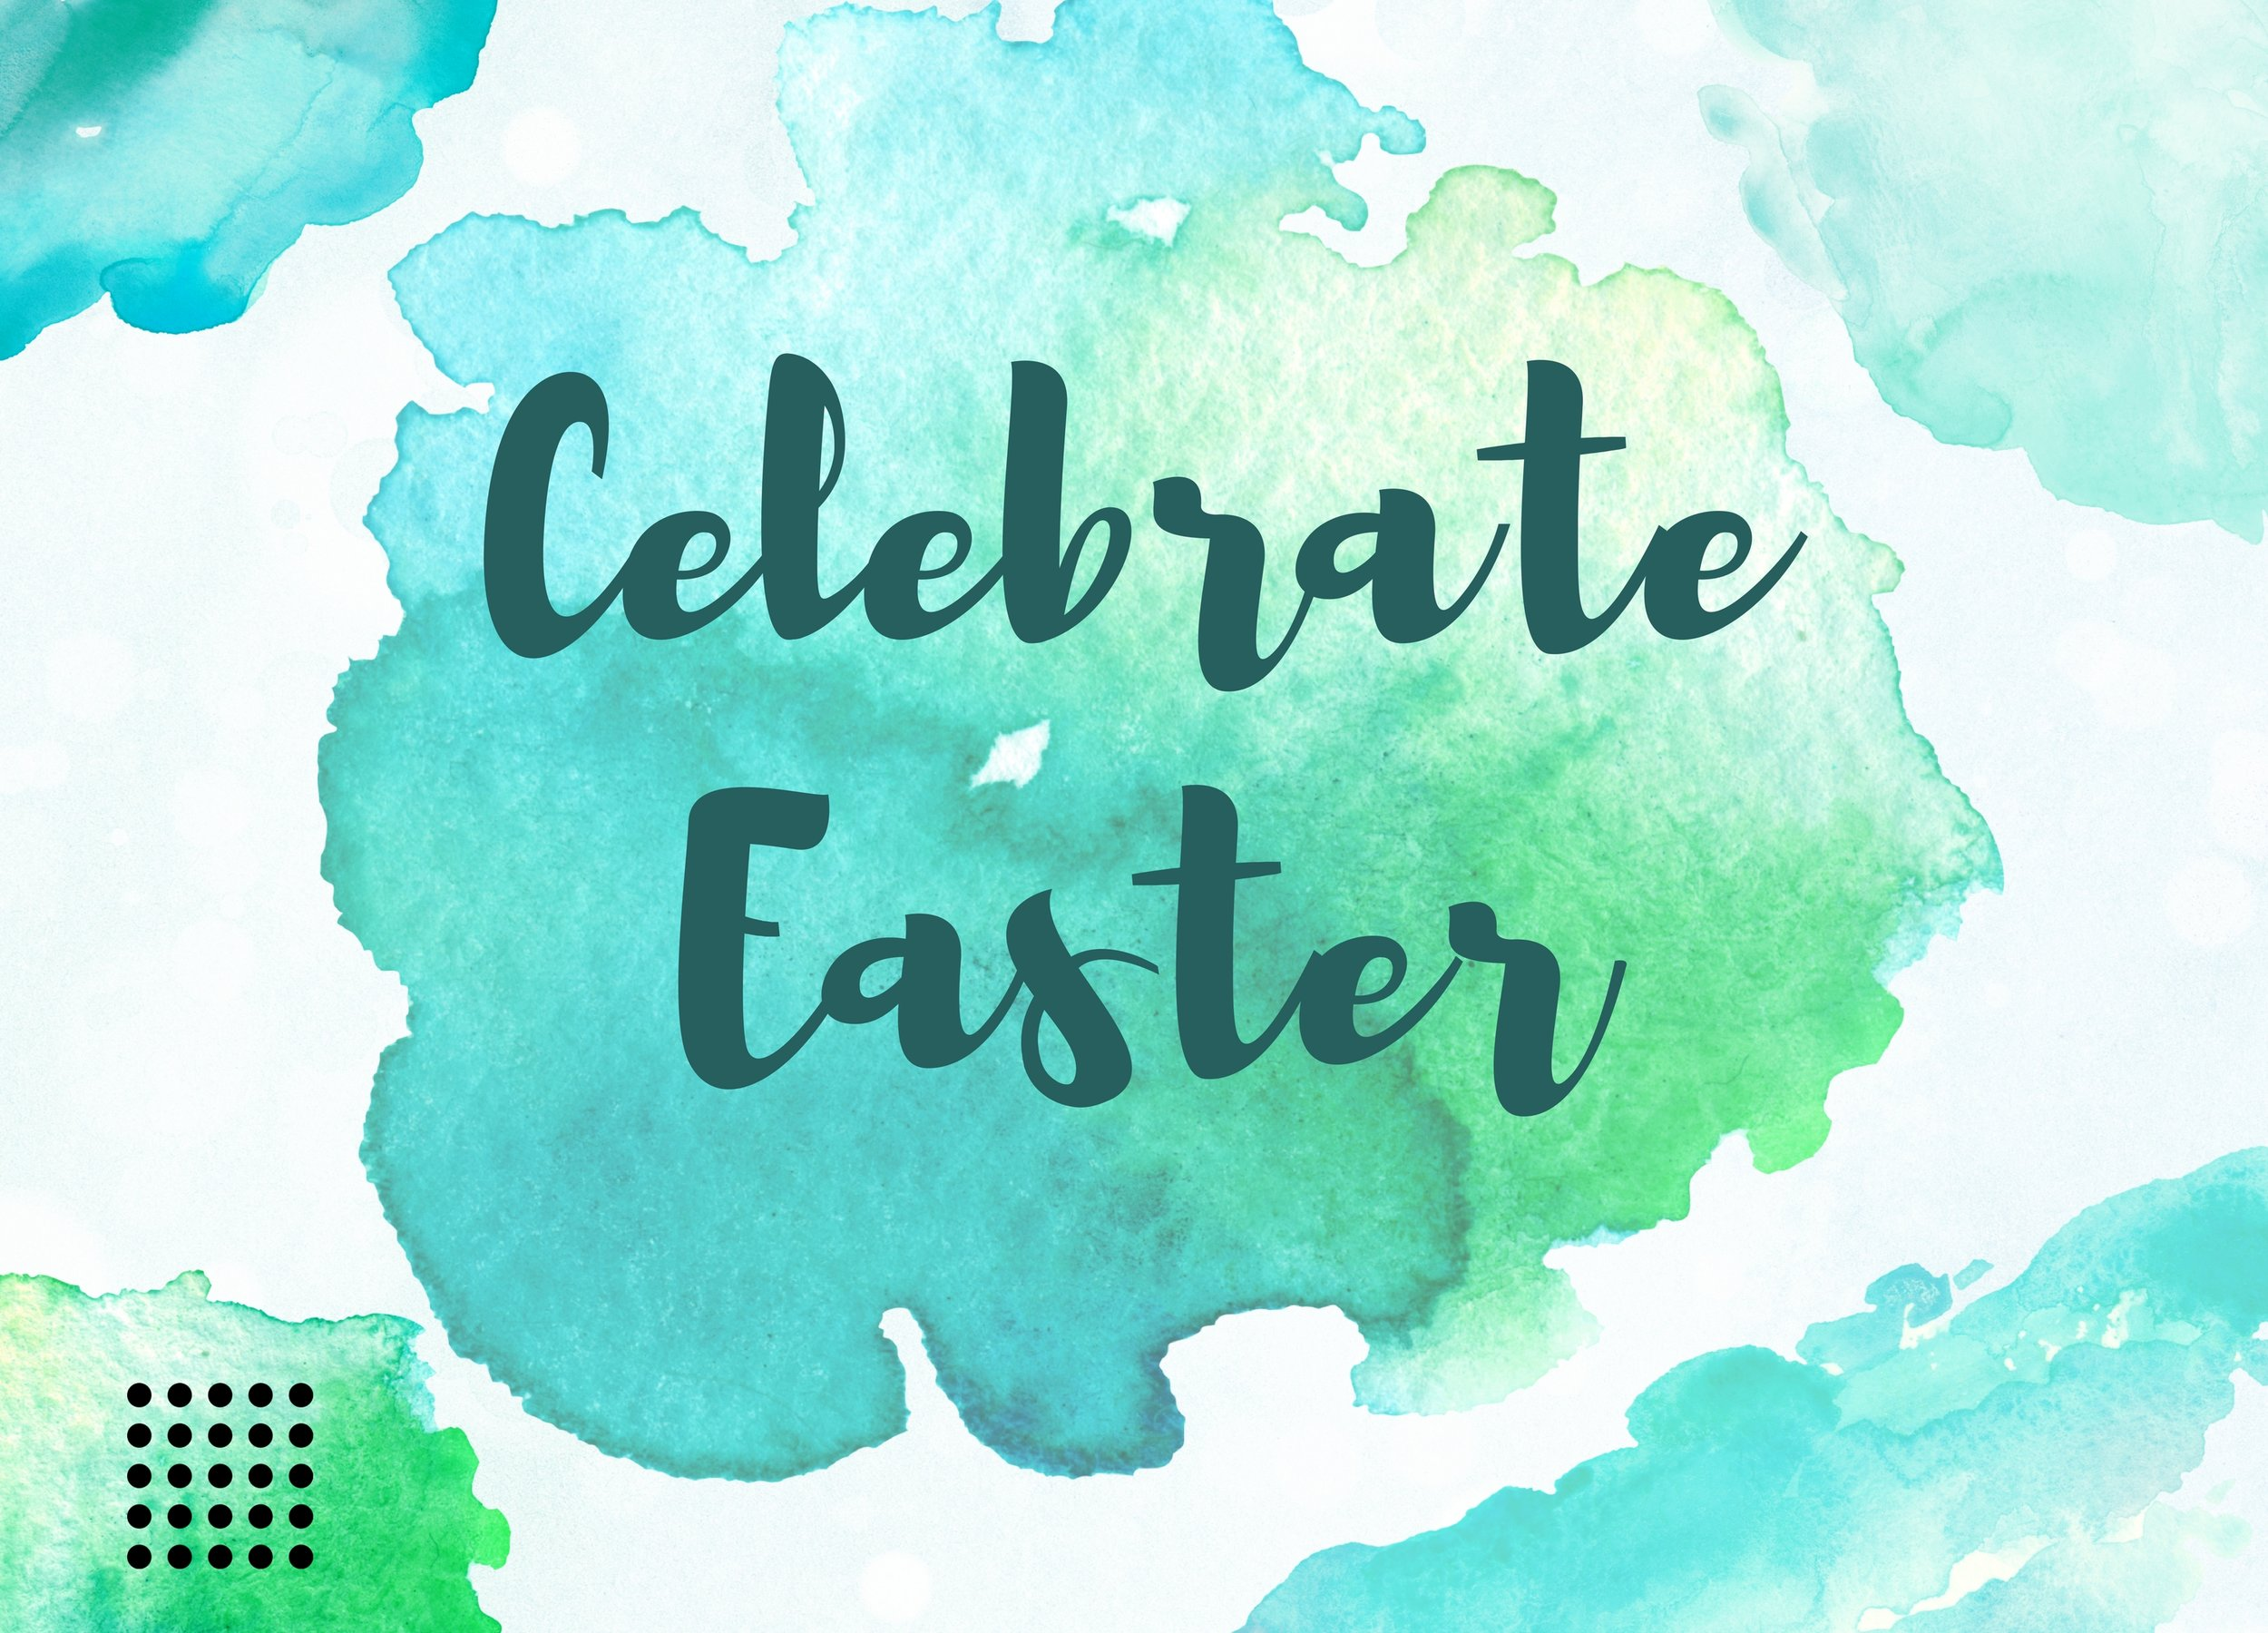 Easter 2019 - April 21st, 2019